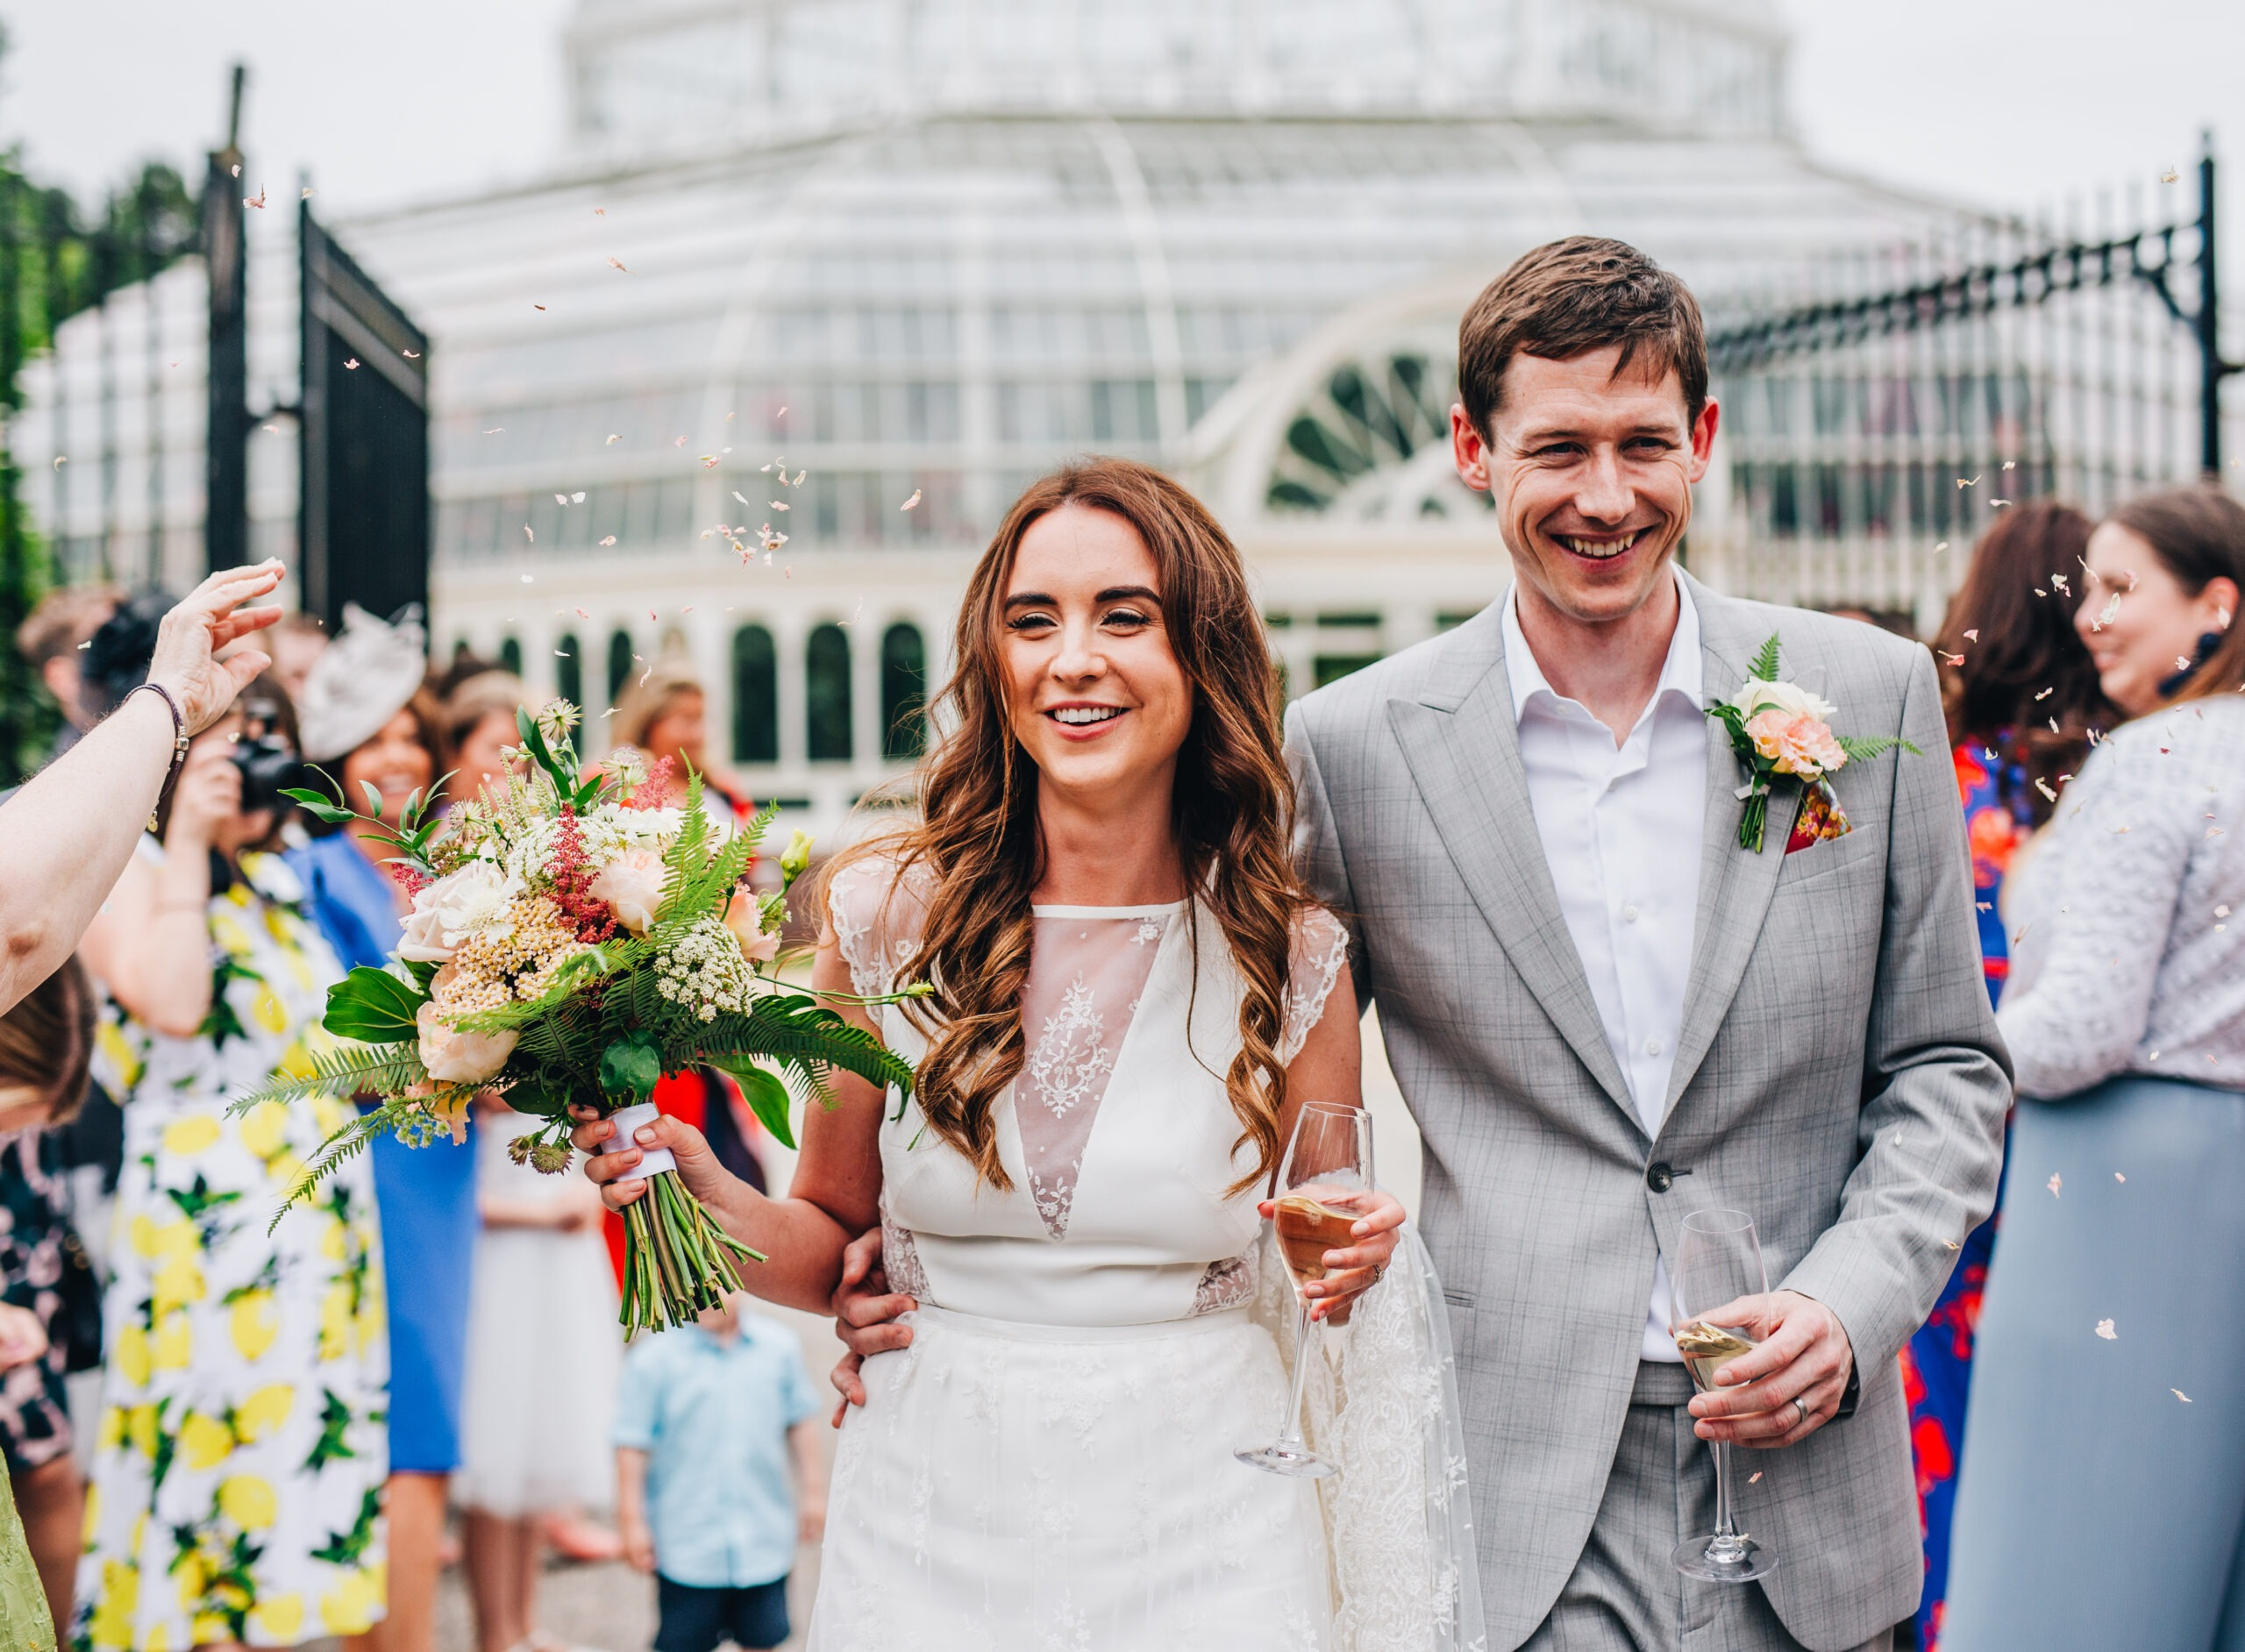 Sefton Park Palm House wedding in Liverpool